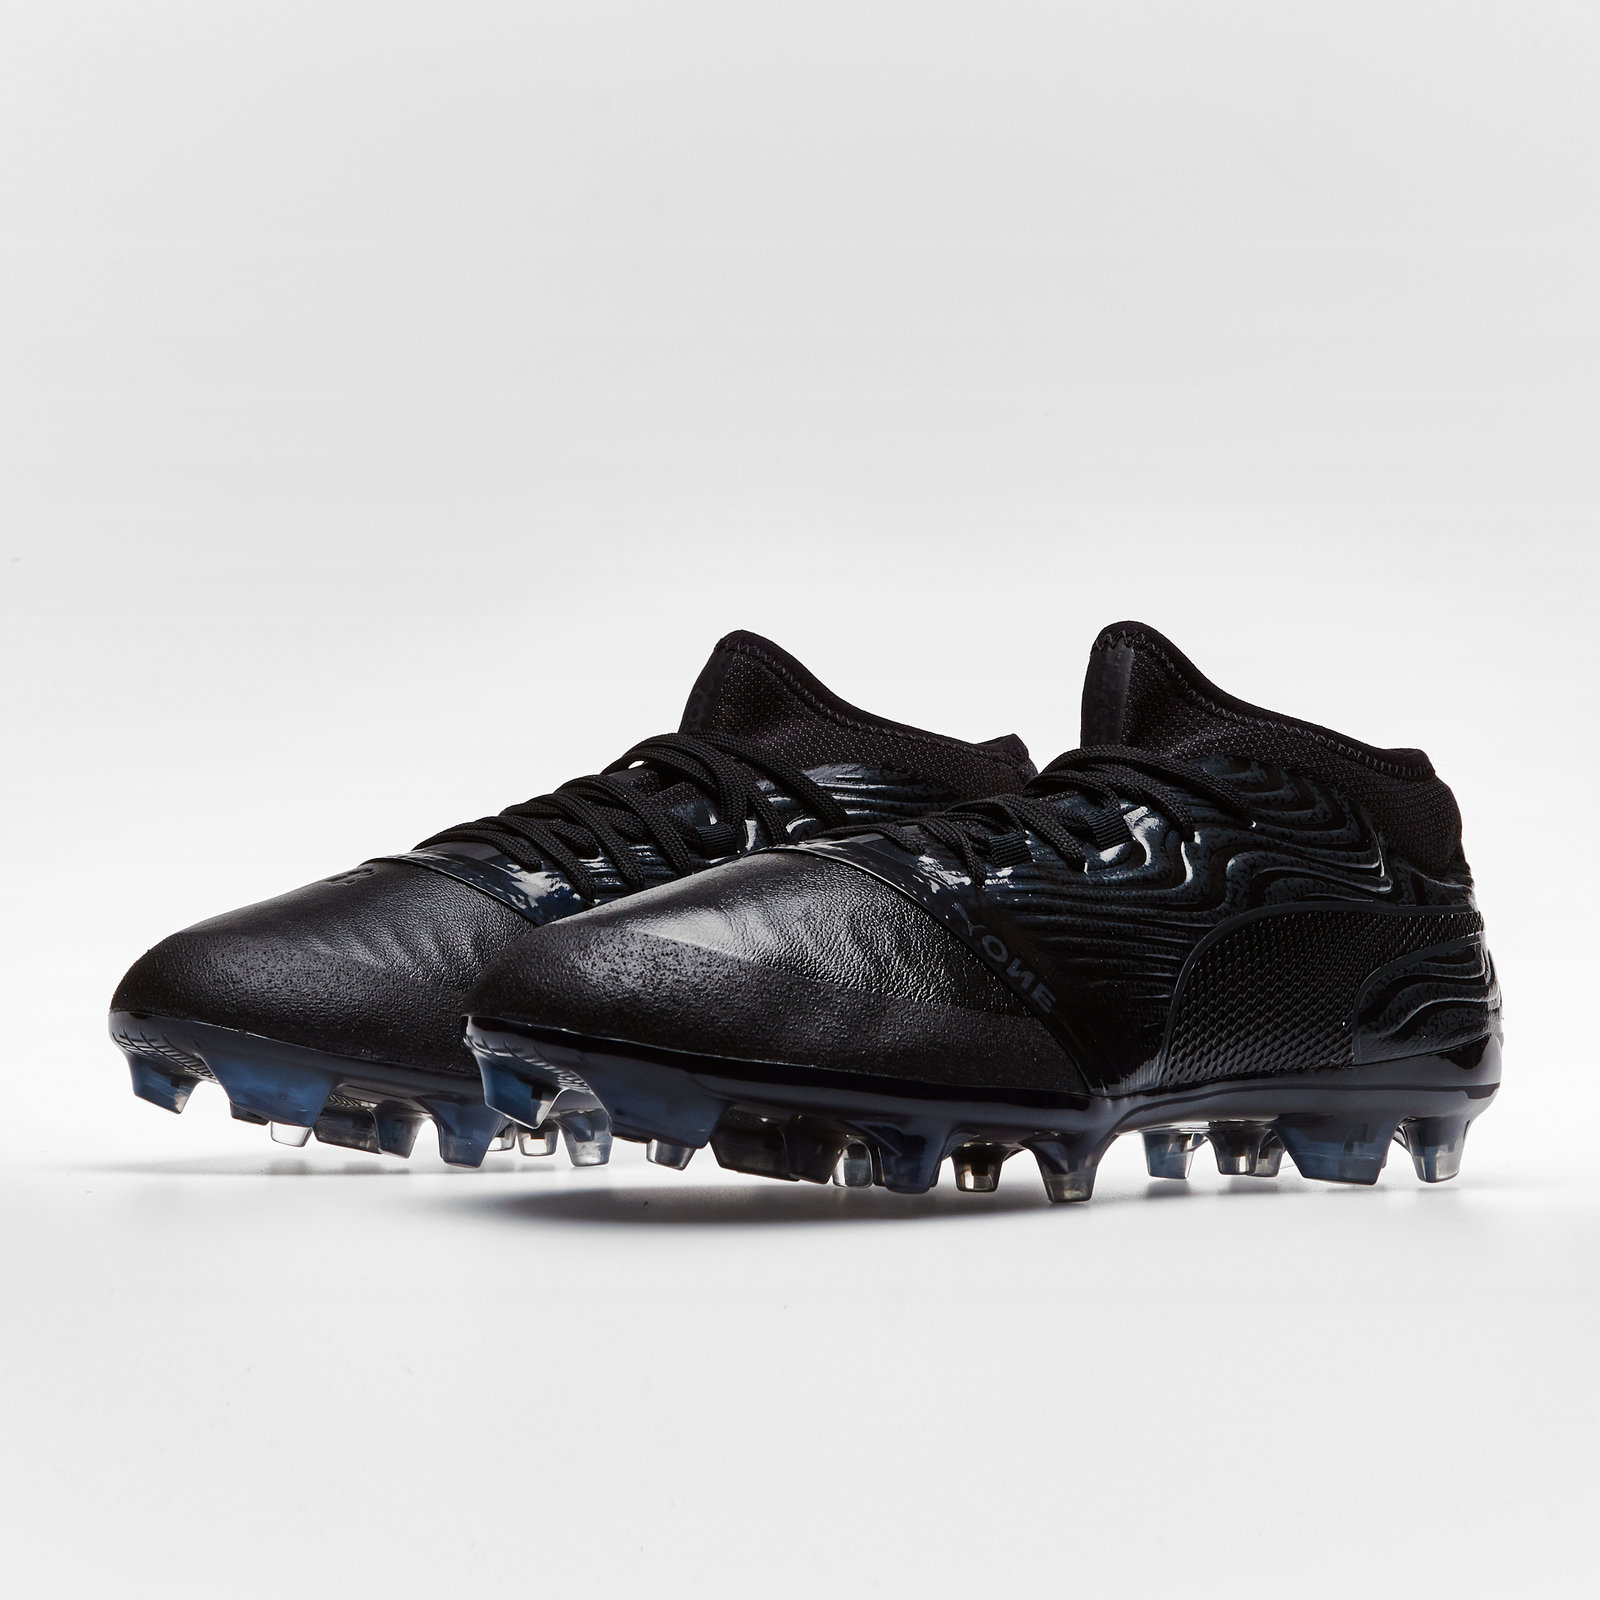 0ef37372a26dbf Mens Puma One 18.2 AG Football Boots Studs Trainers Sports Shoes Black  Footwear